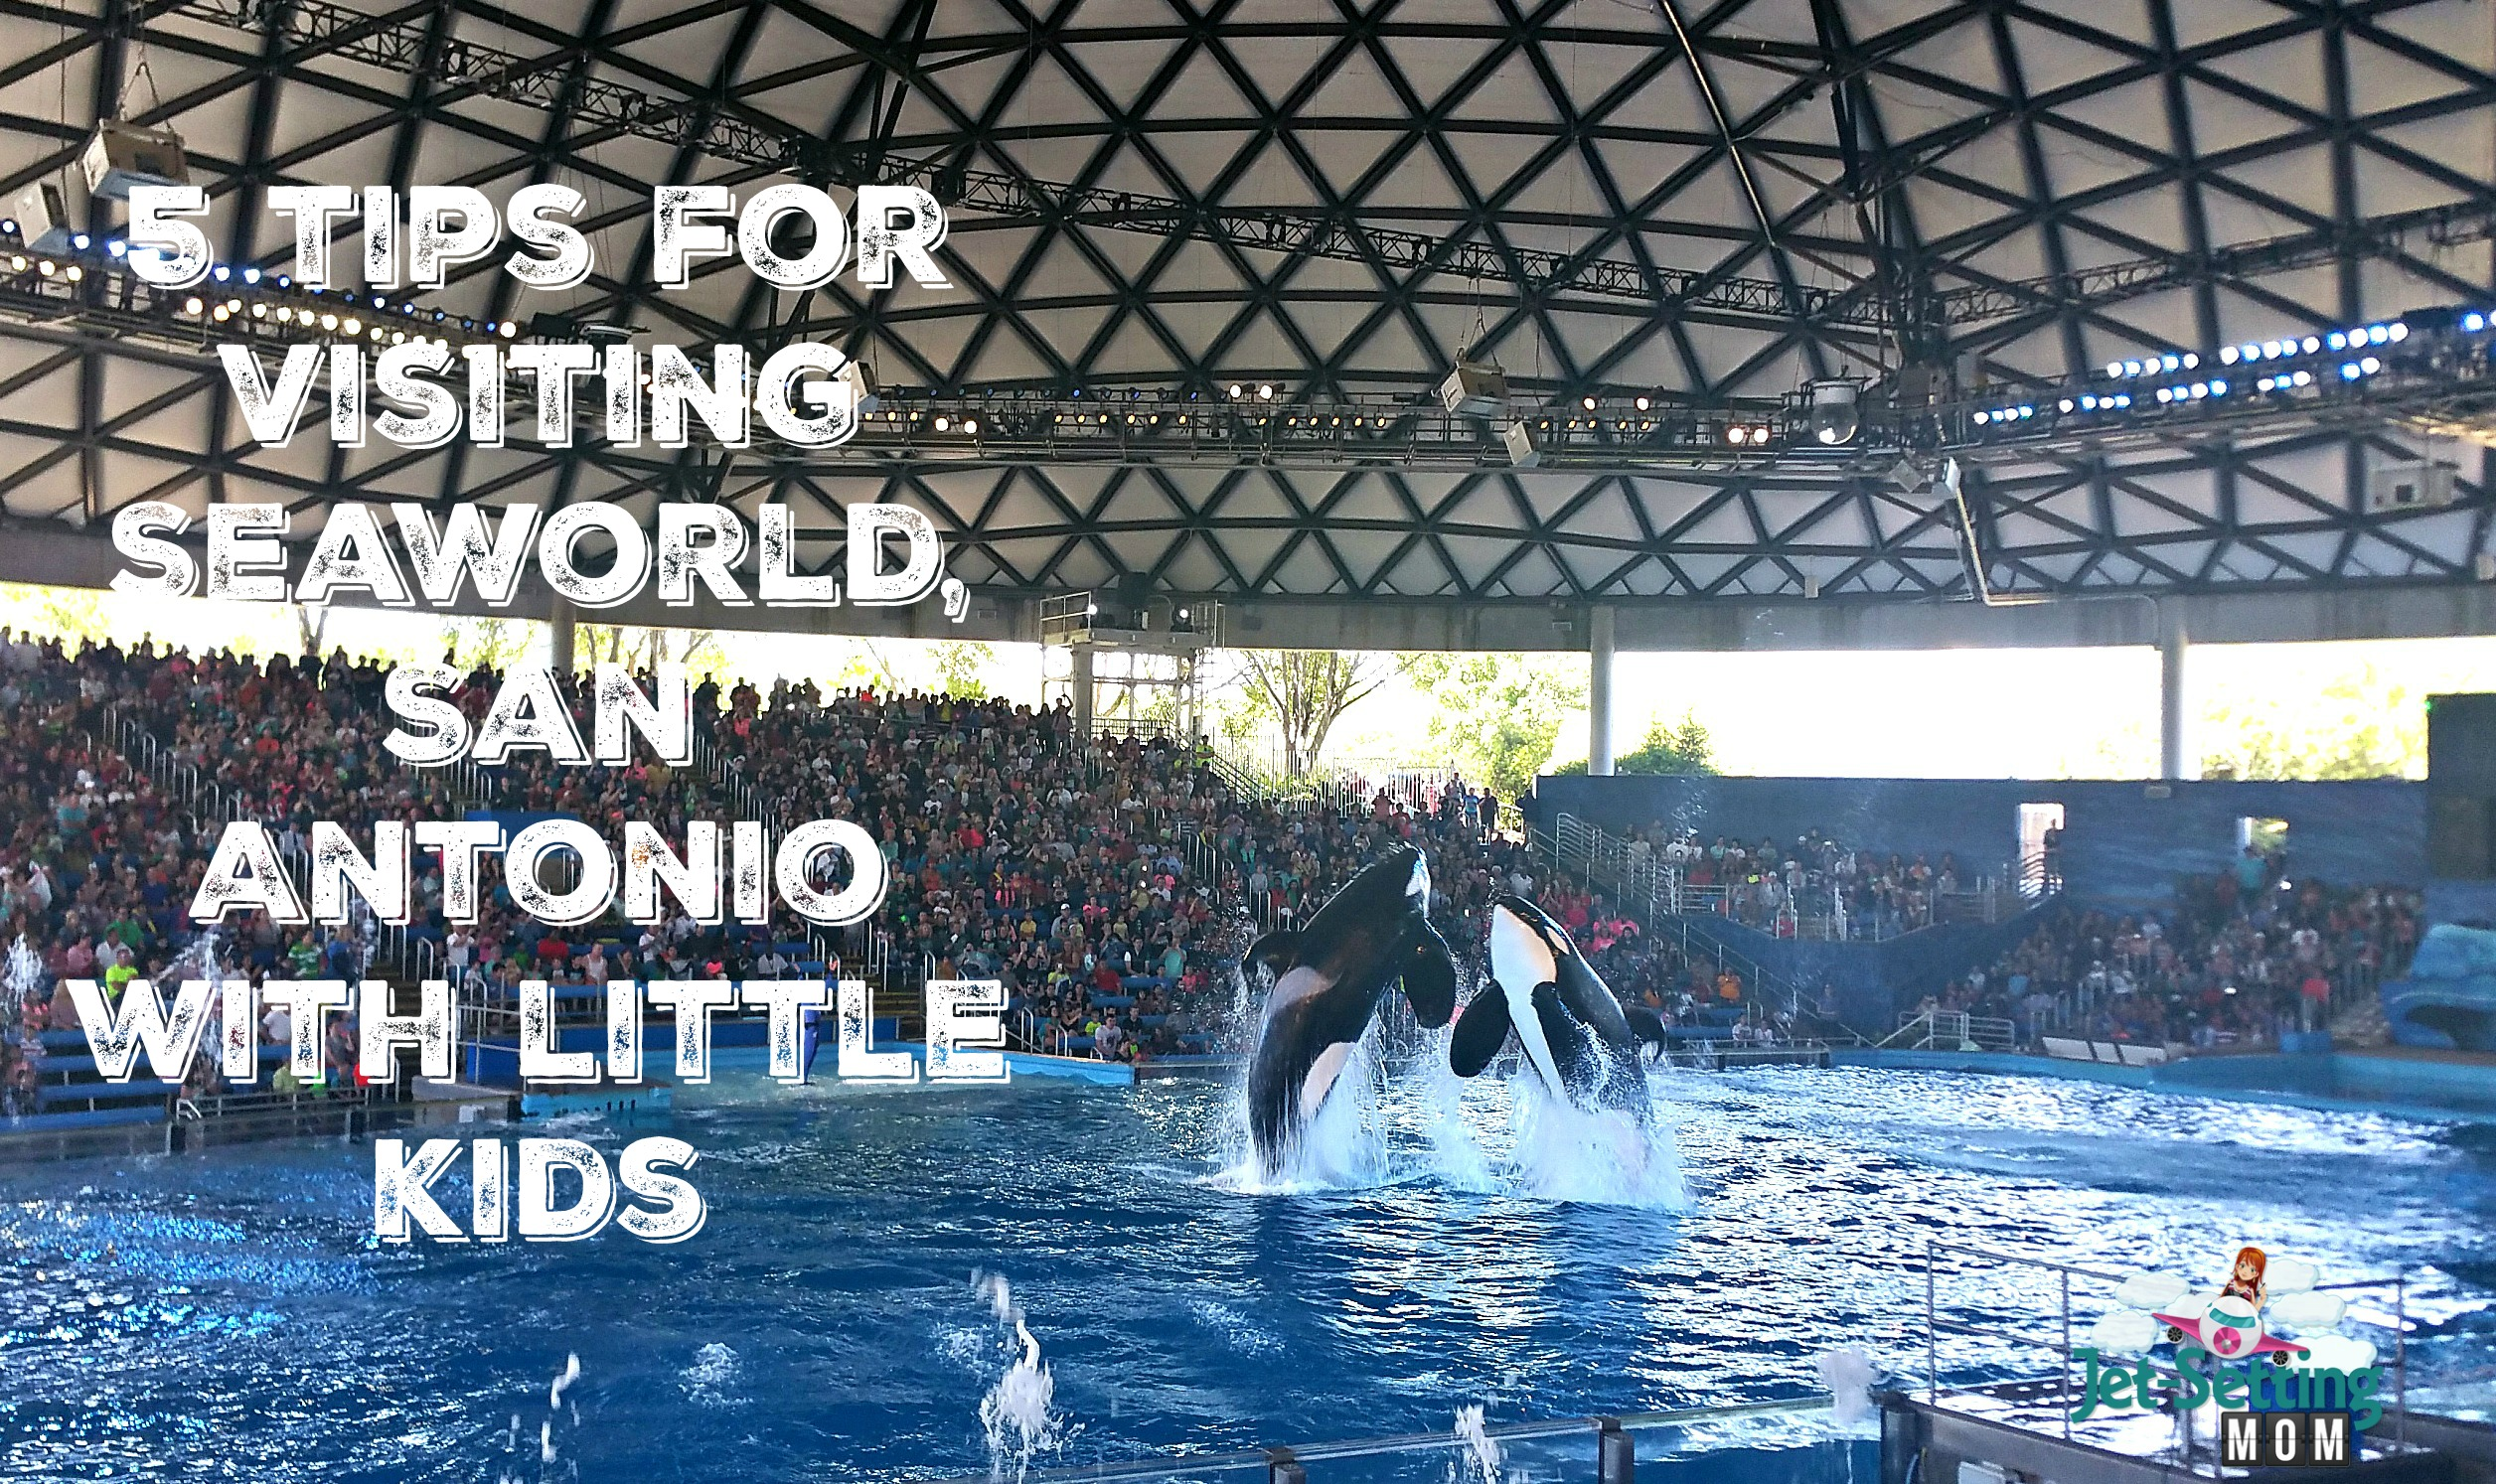 5 tips for visiting SeaWorld, San Anotino With Little Kids